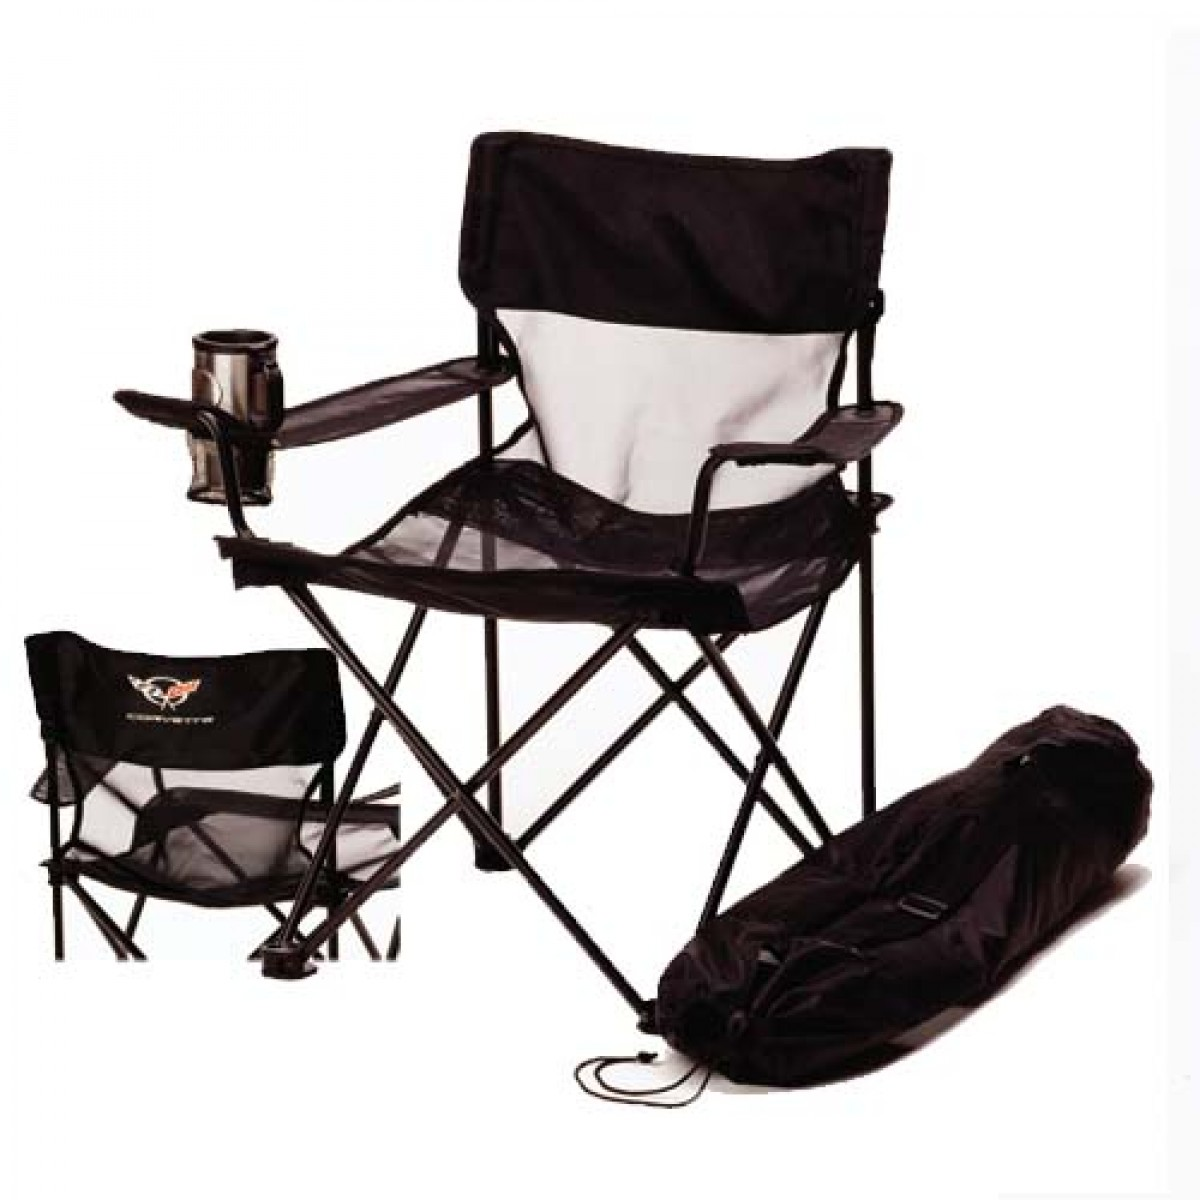 chair with accessories johnston casuals chairs hossrods c5 corvette travel hot rod